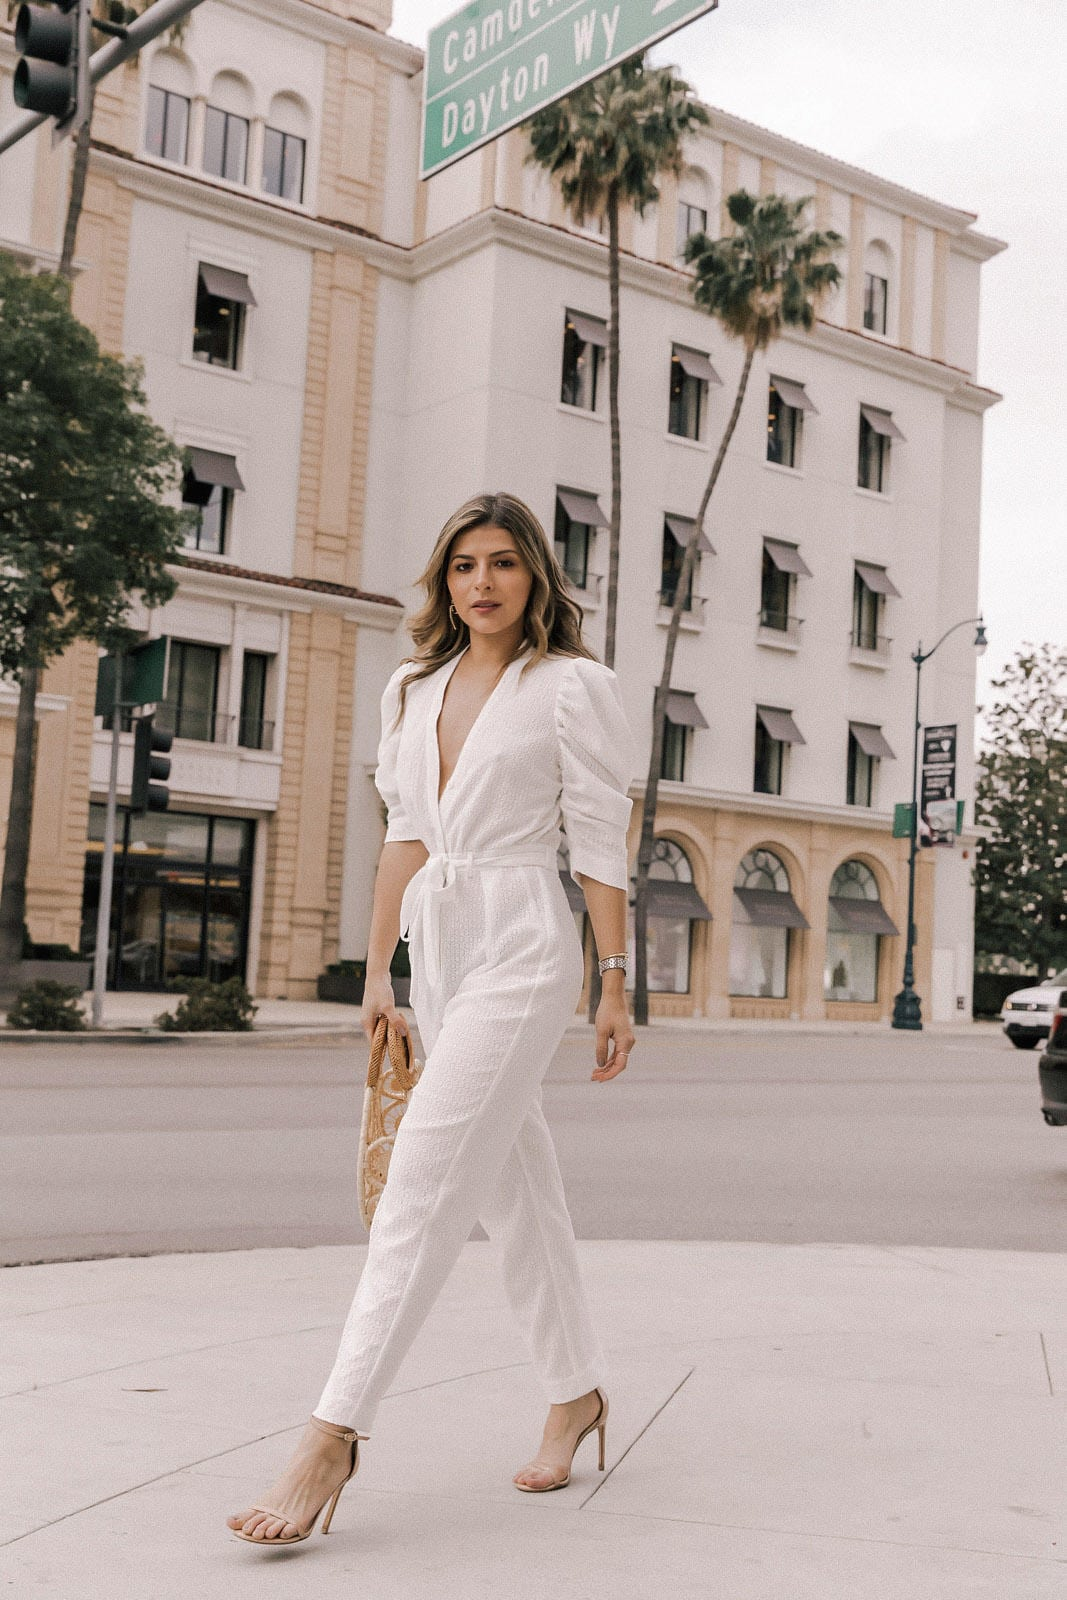 cult gaia bag, white wrap jumpsuit, stuart weitzman heels, eyelet outfit, jenny bird earrings, white jumpsuit, how to wear a jumpsuit, petite fashion | TheGirlFromPanama.com